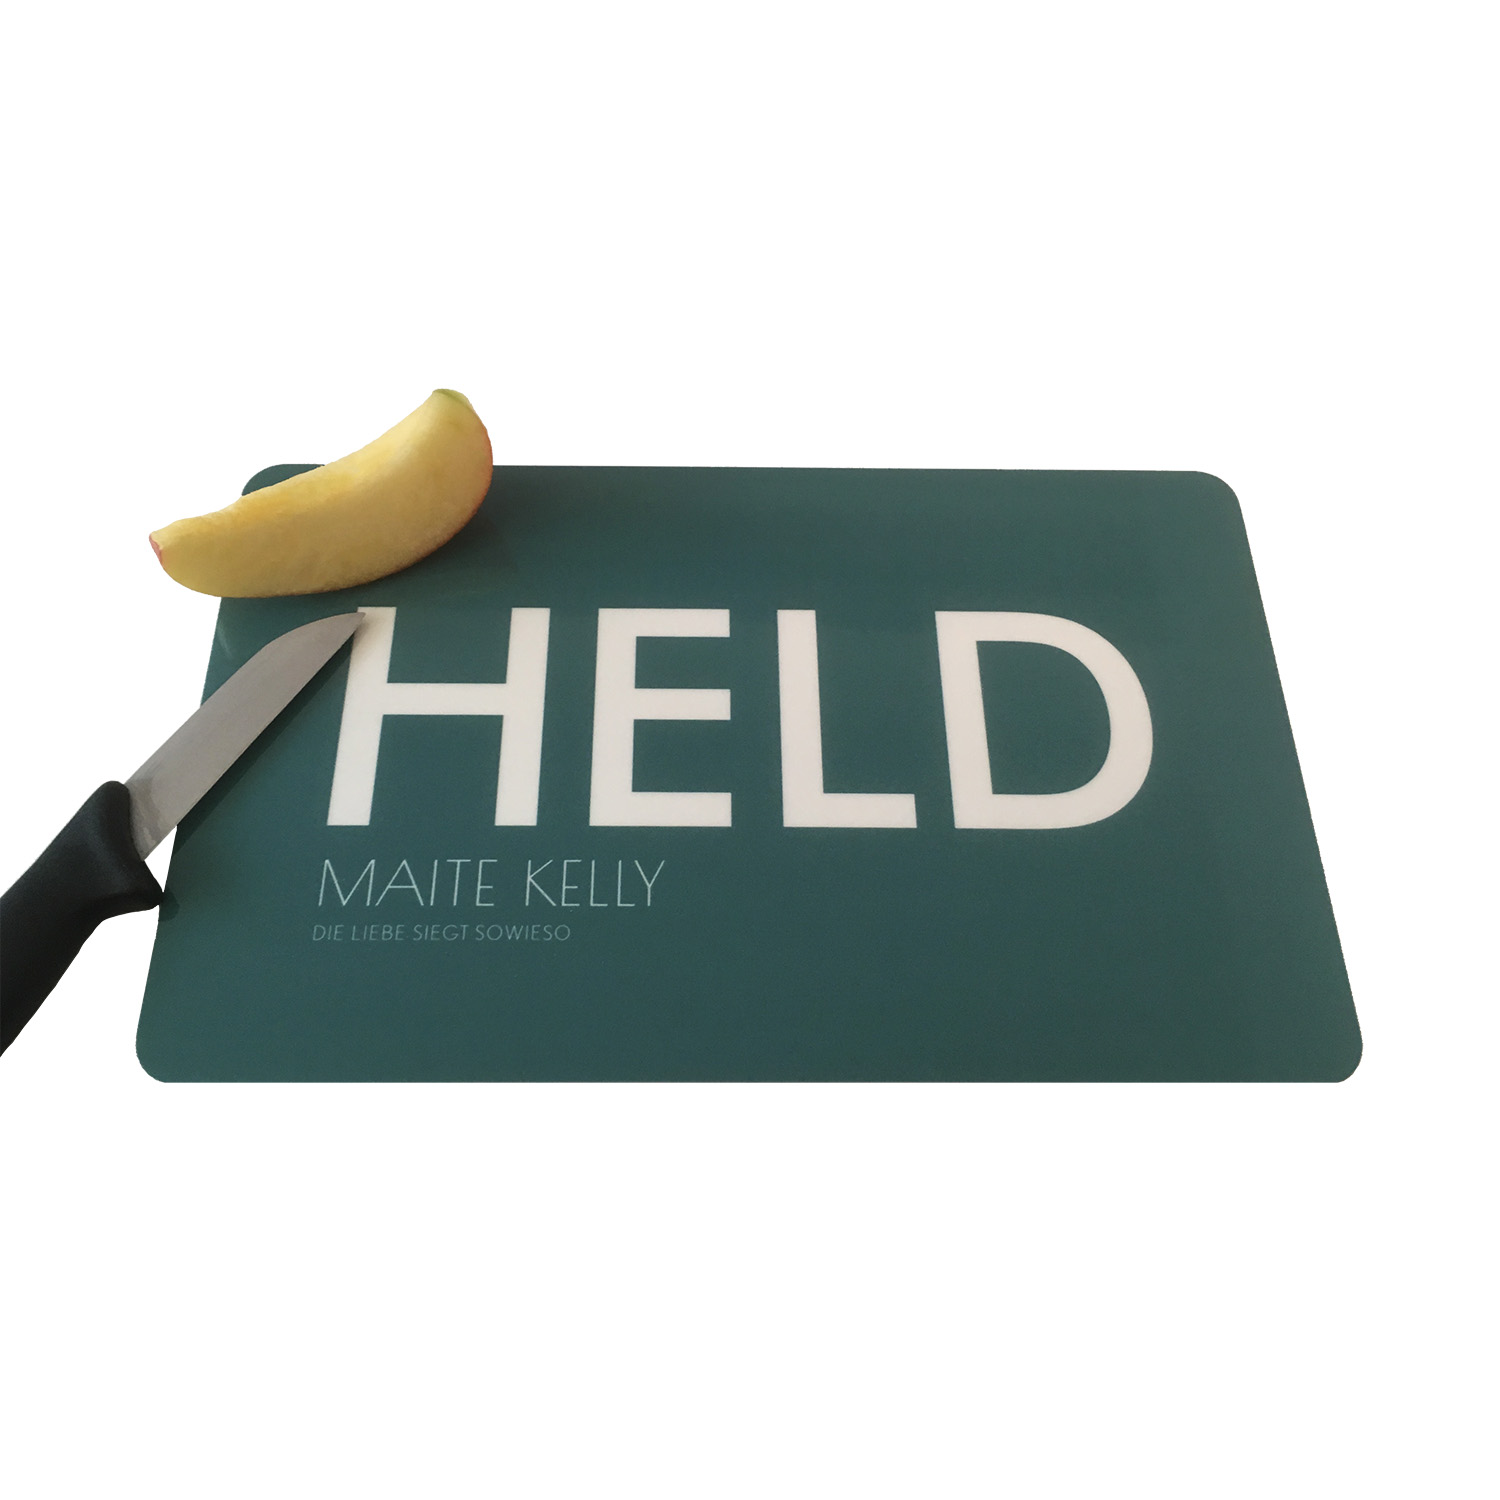 Maite Kelly Held Breakfast board, petrolgrün